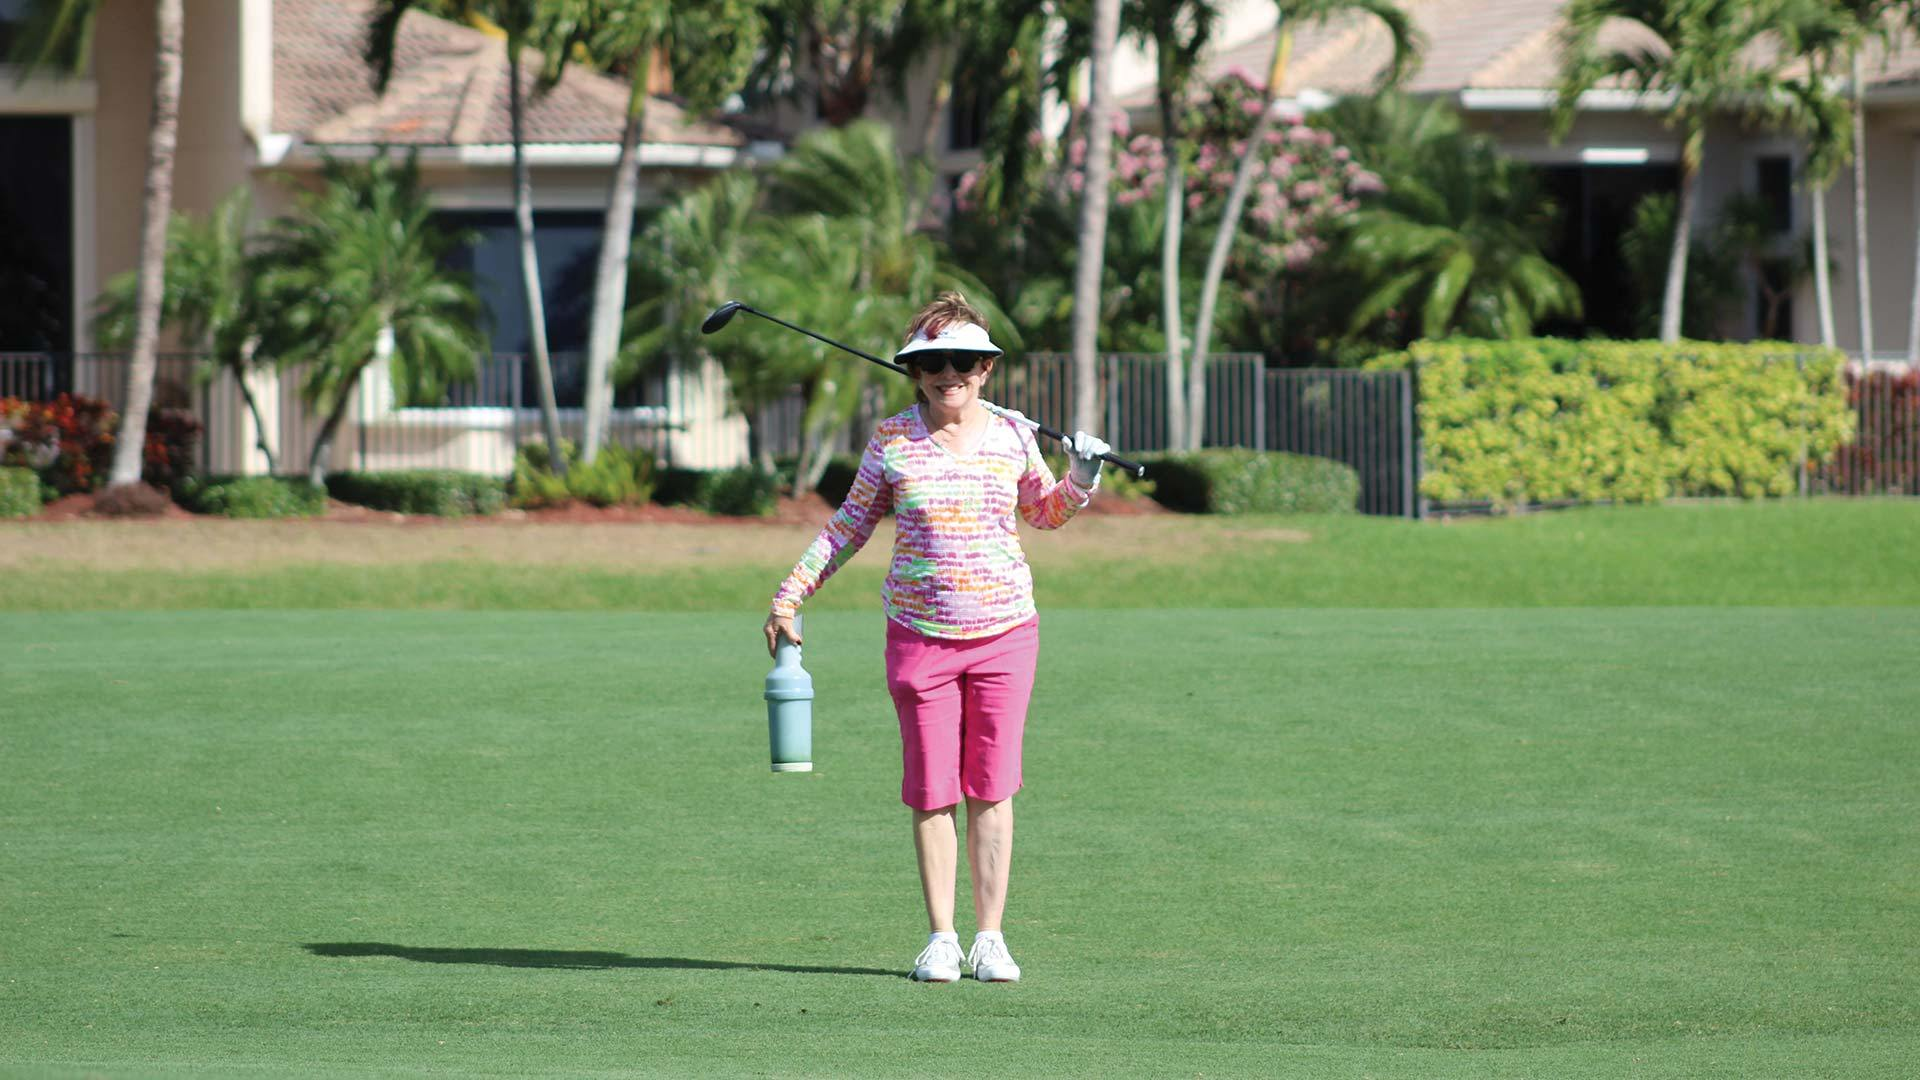 mizner-country-club-delray-beach-golf-images-5